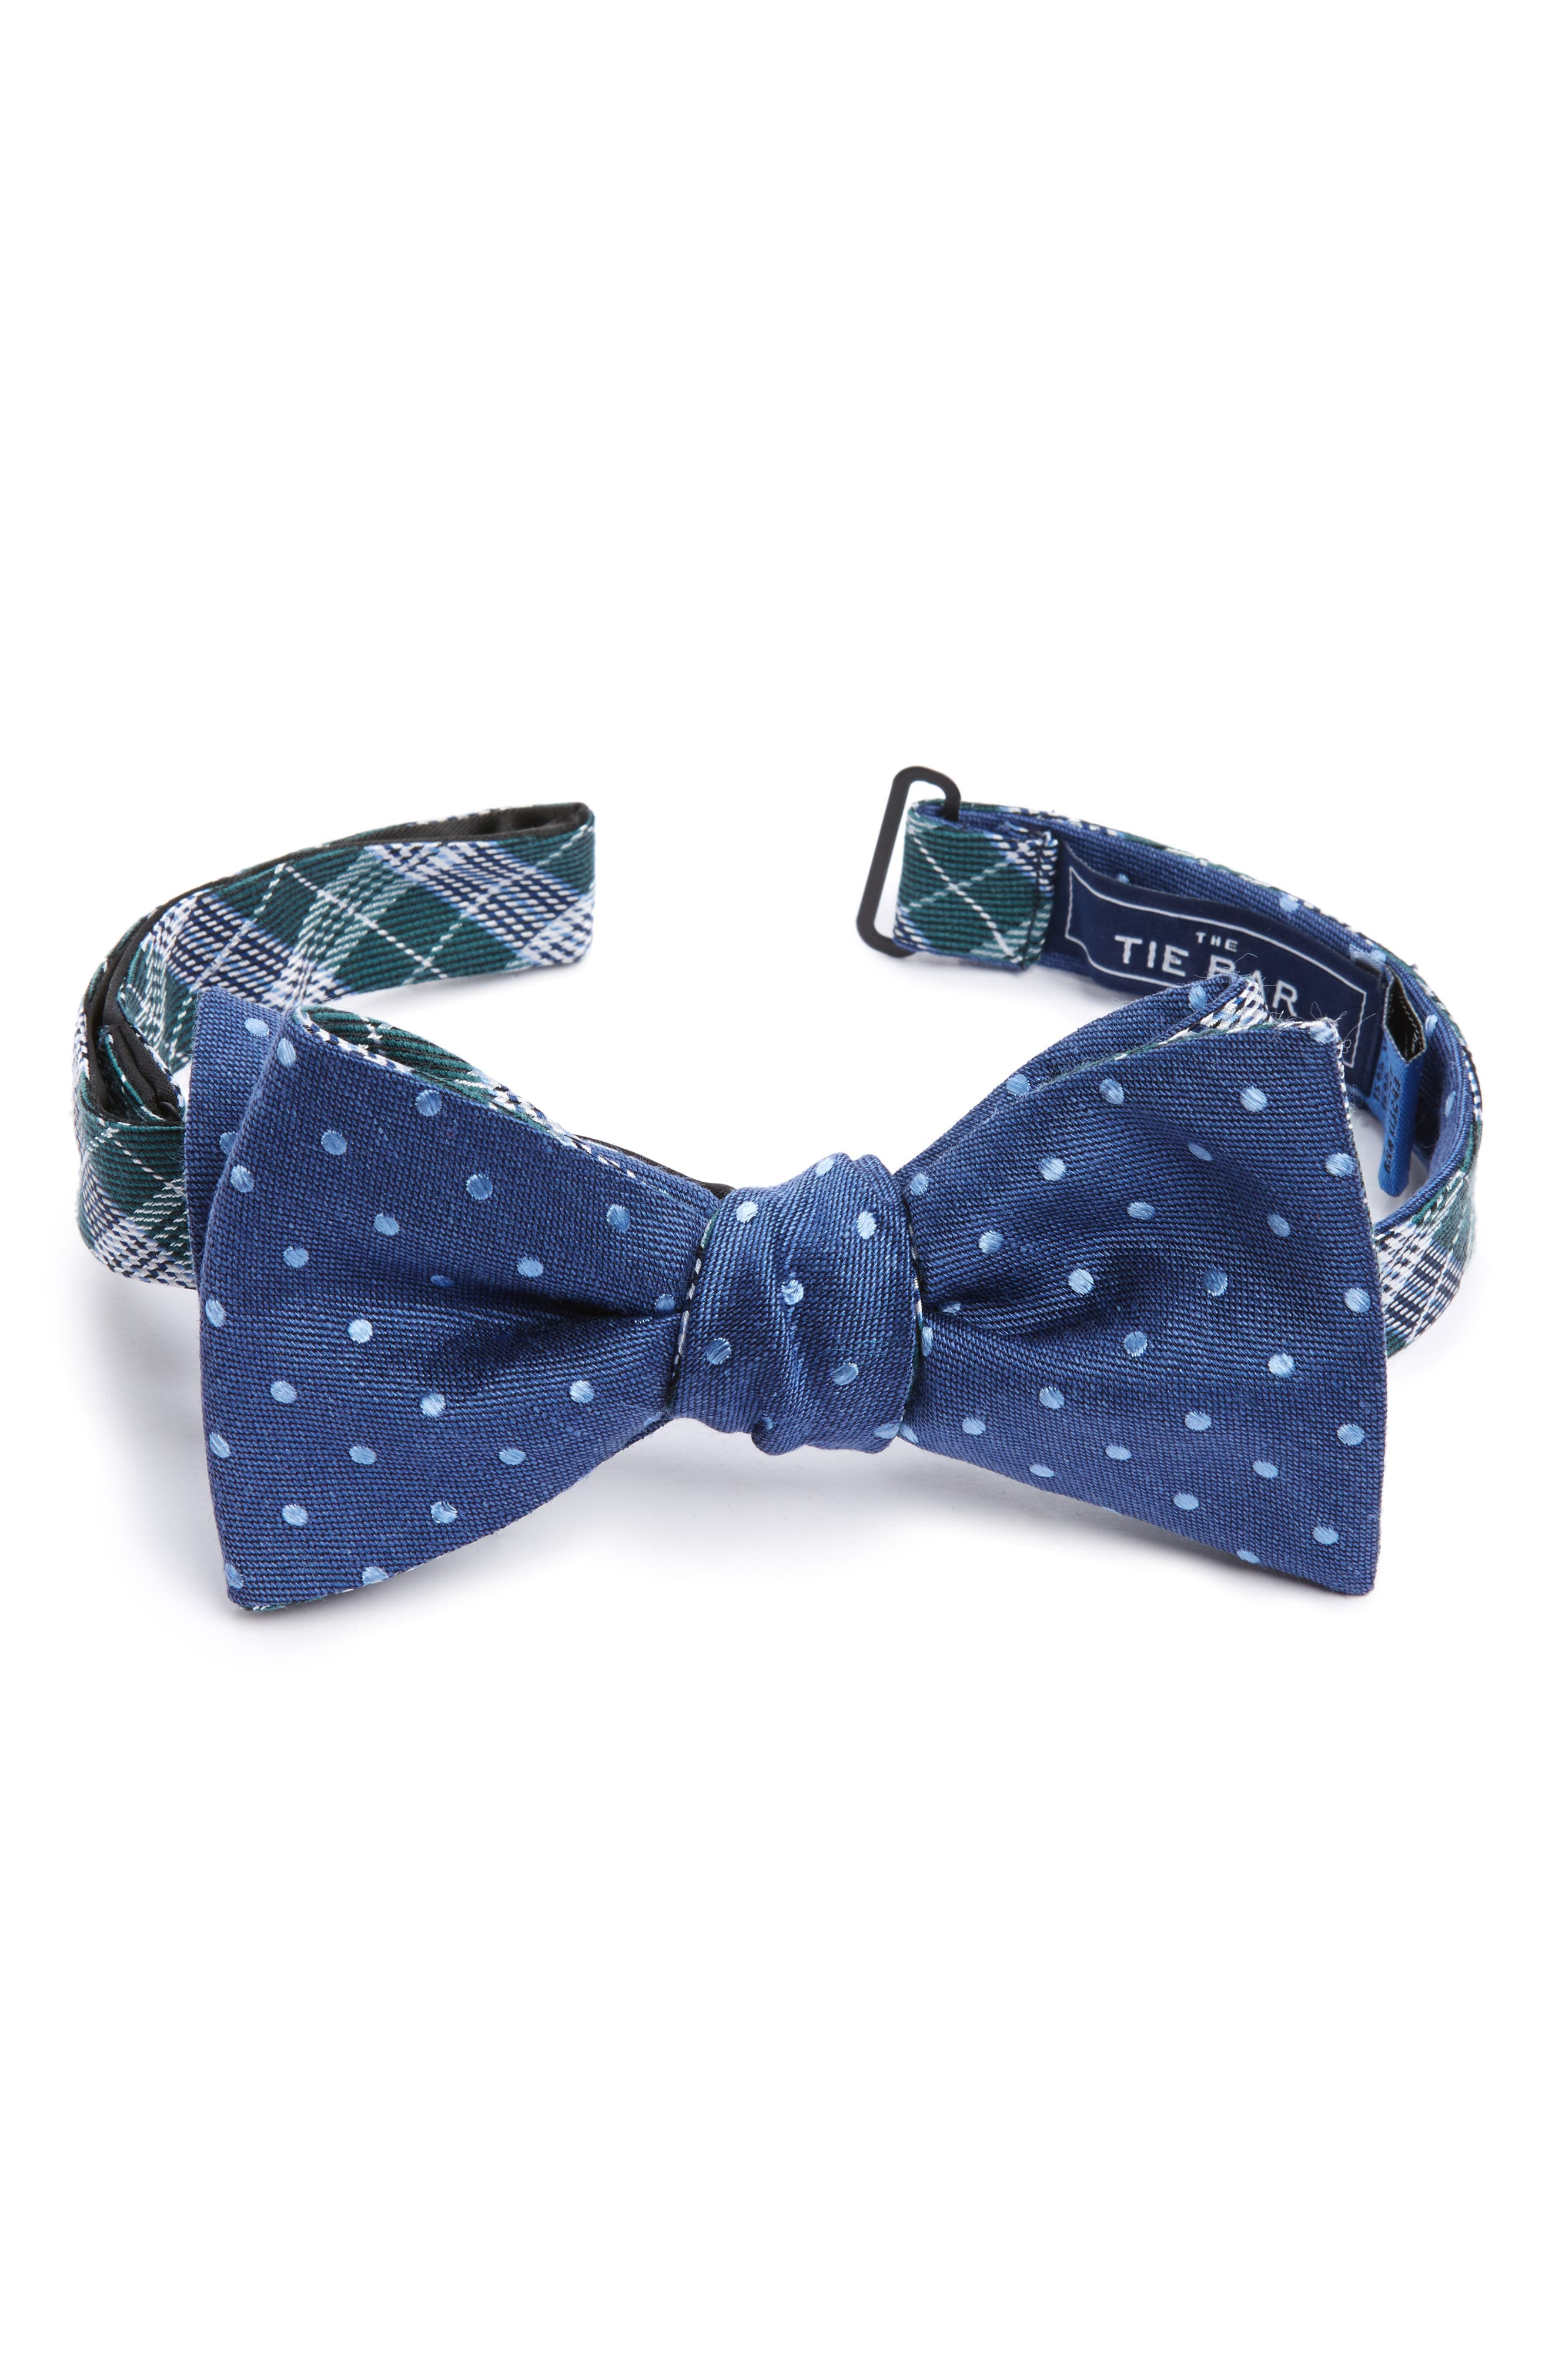 Main Image - The Tie Bar Emerson Reversible Silk Bow Tie